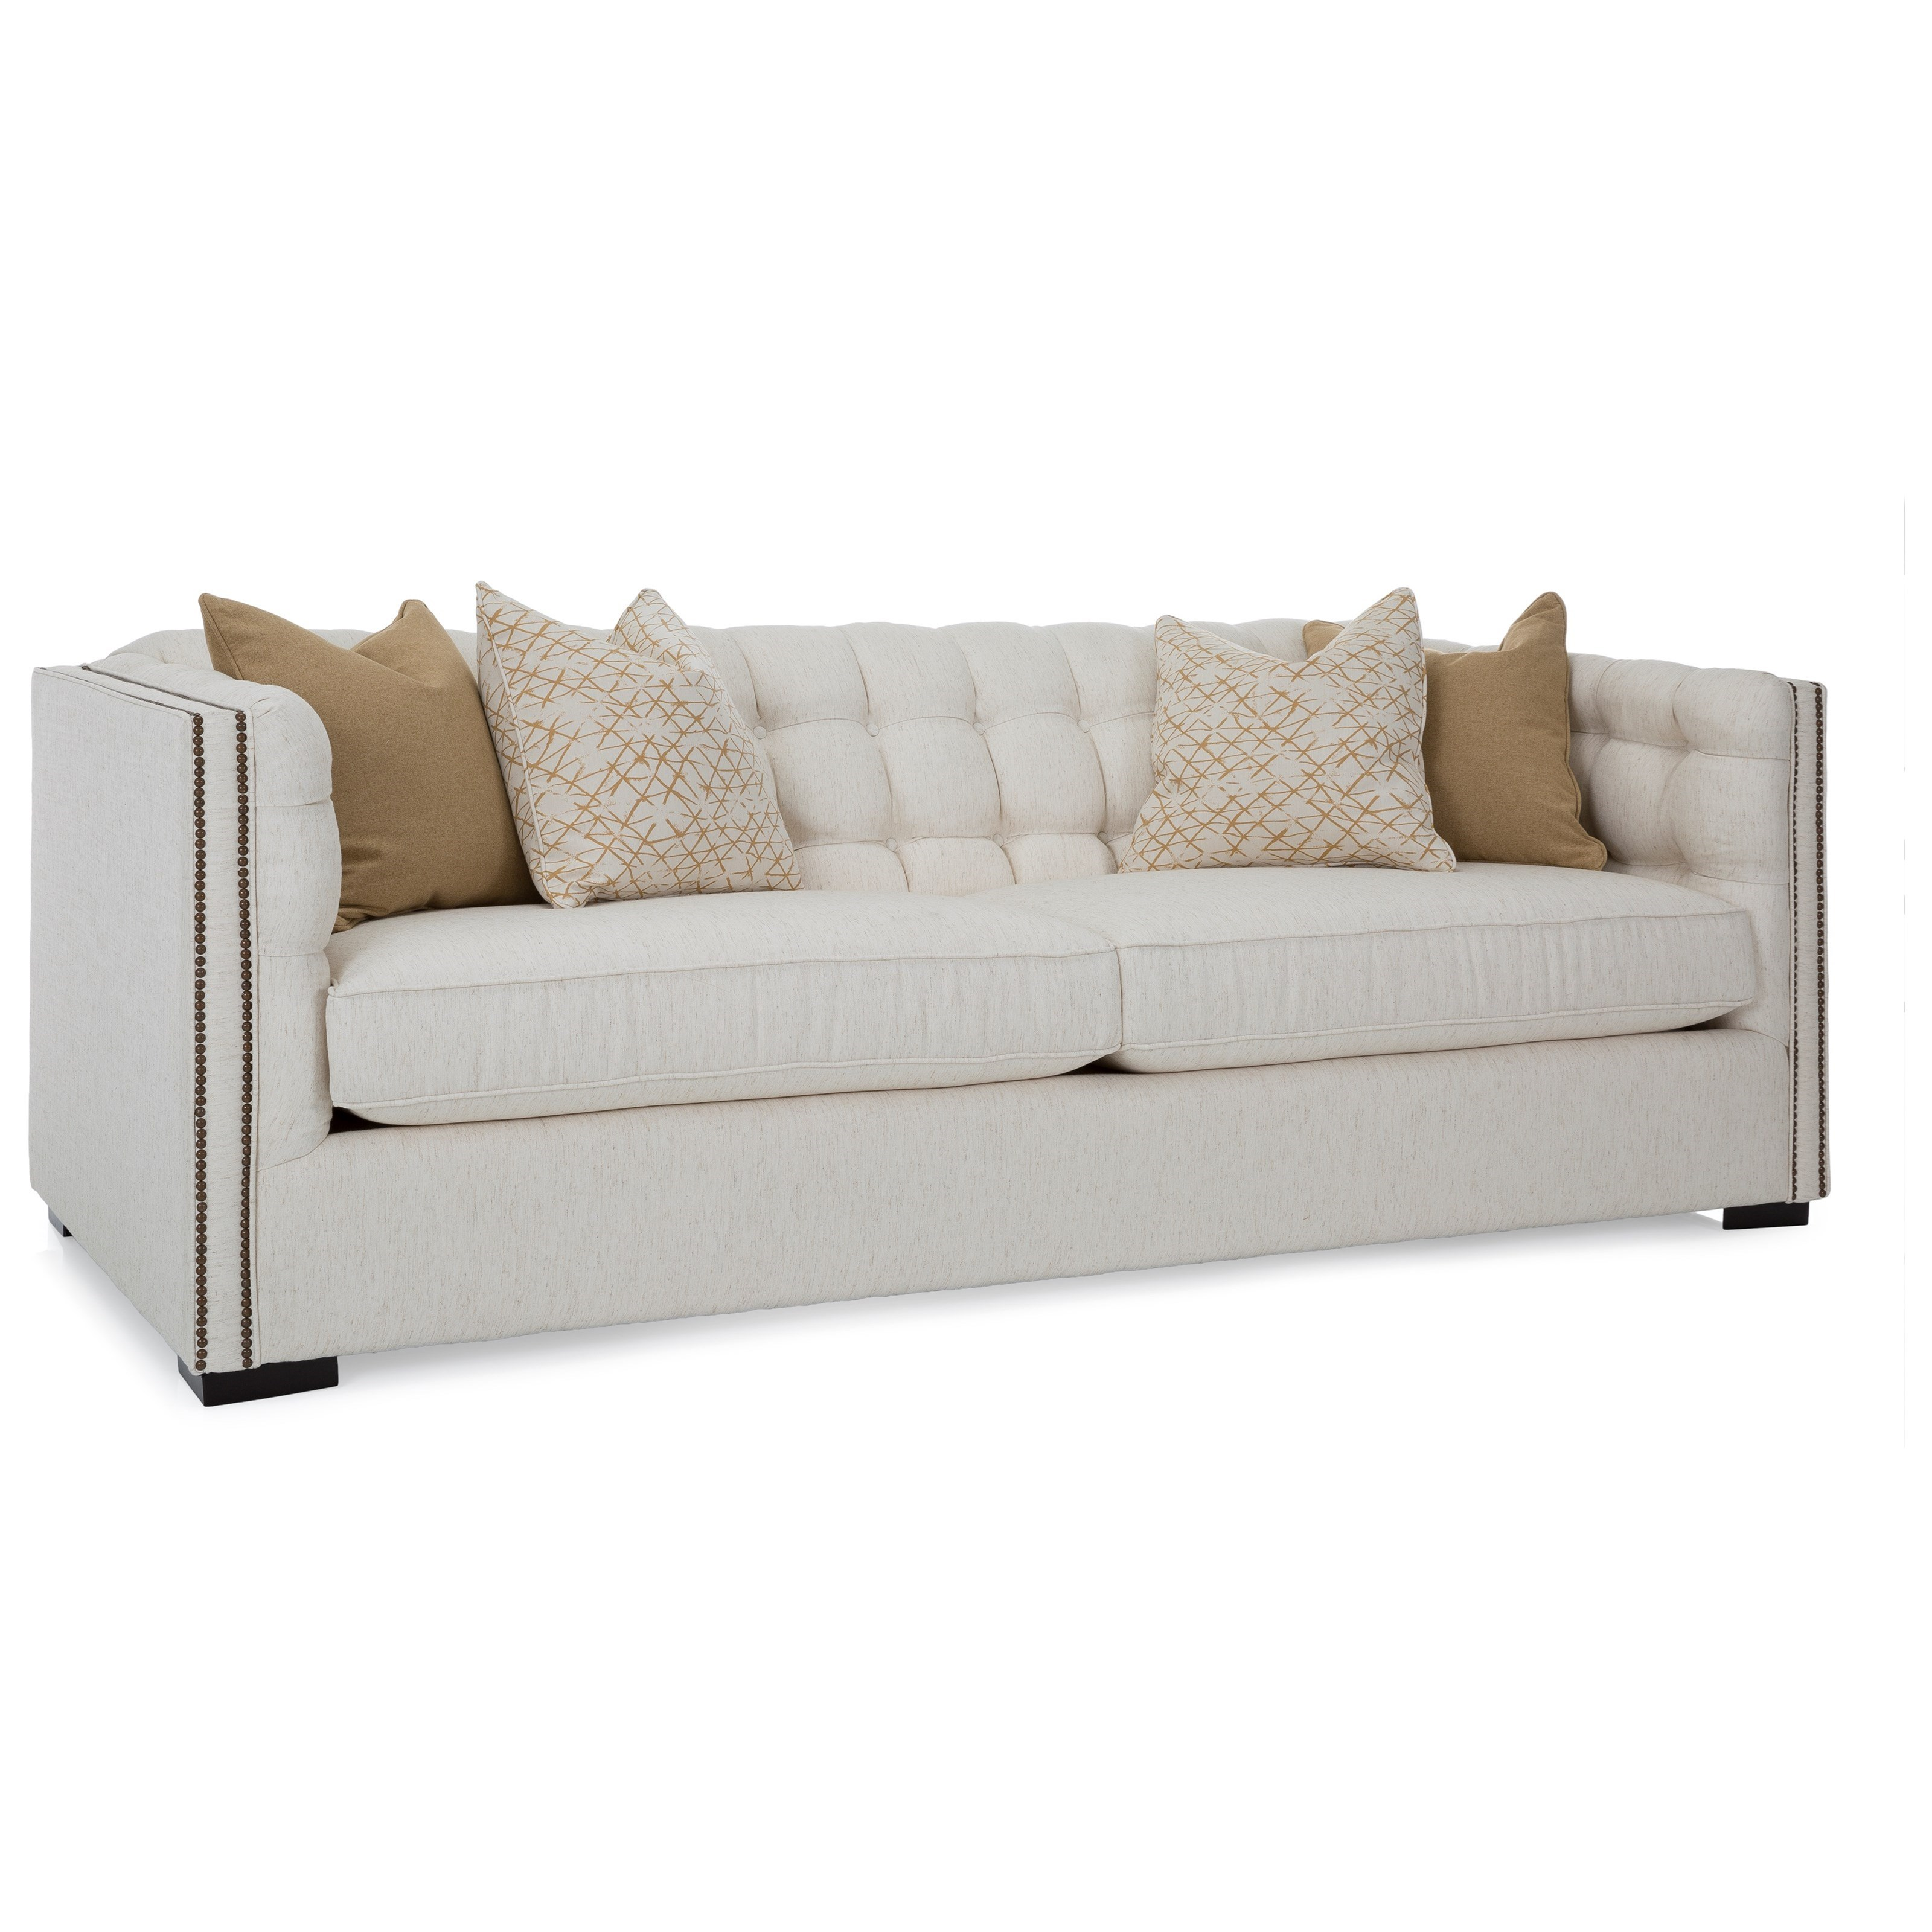 7793 Series Sofa by Decor-Rest at Stoney Creek Furniture